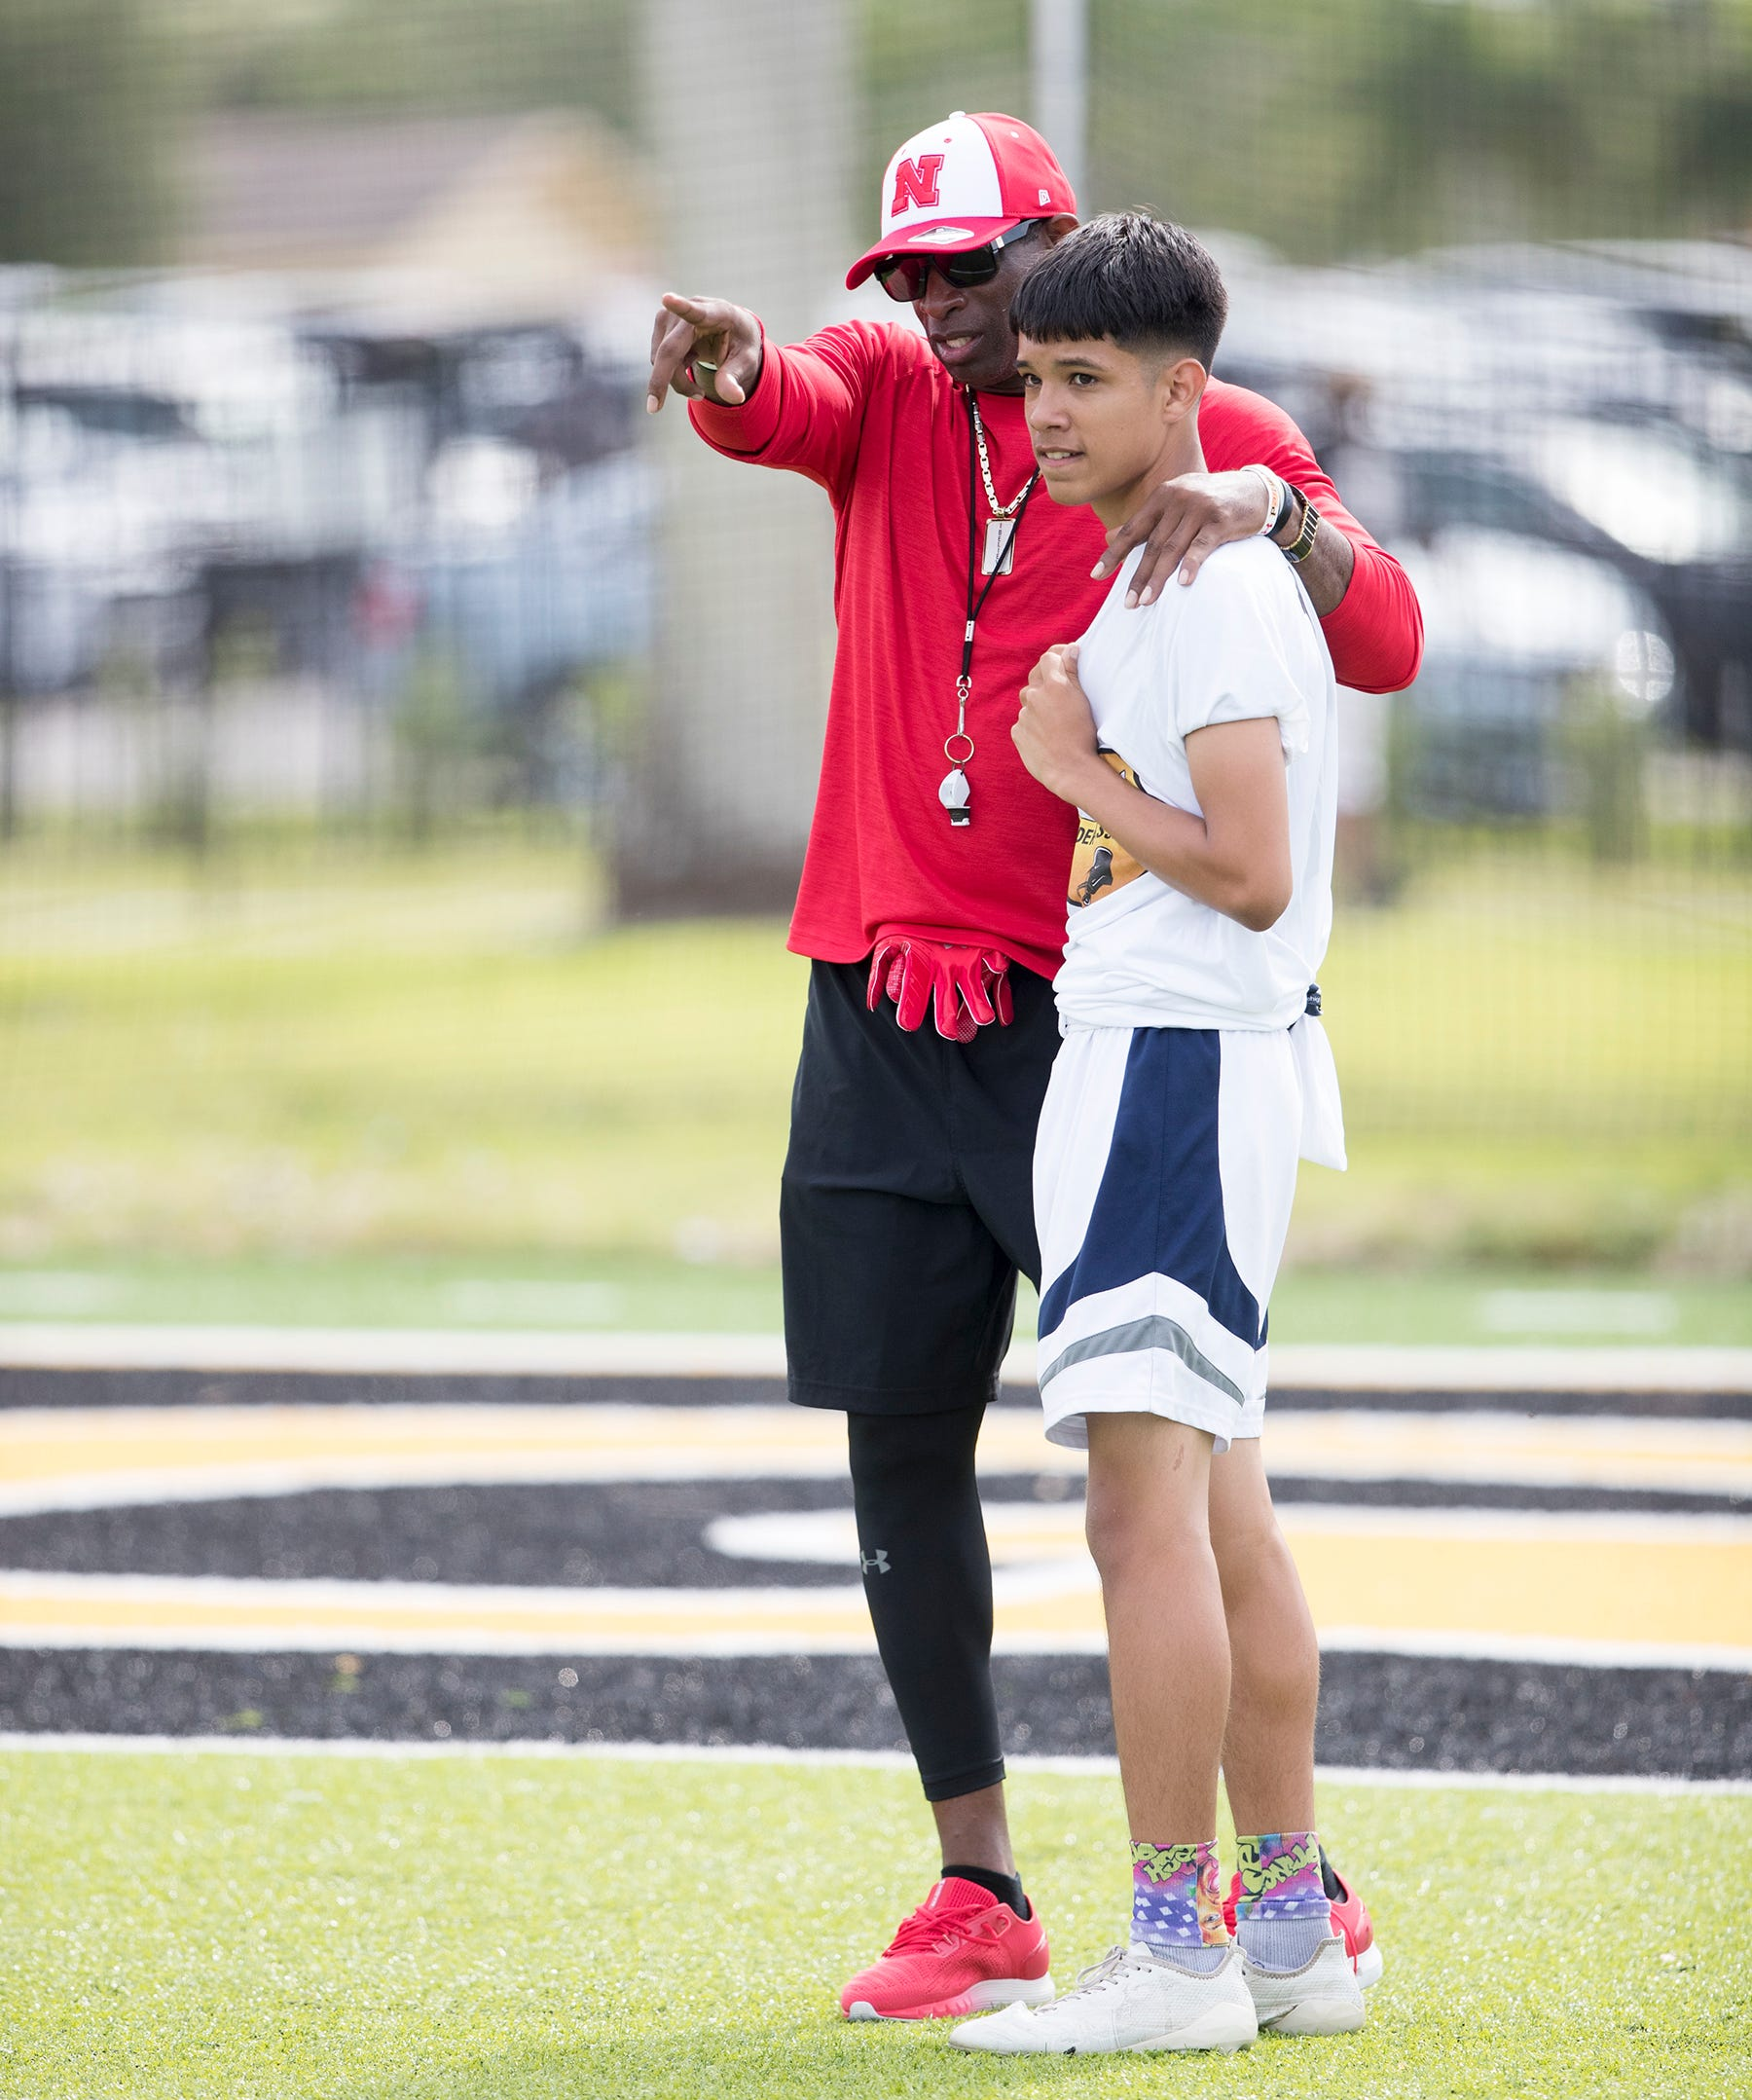 Deion Sanders leads the Prime Elite Underclassmen Football Camp on Sunday at Bishop Verot in Fort Myers. More than 700 middle and high school athletes attended  the camp that was put on by Under Armour and Deion Sanders.